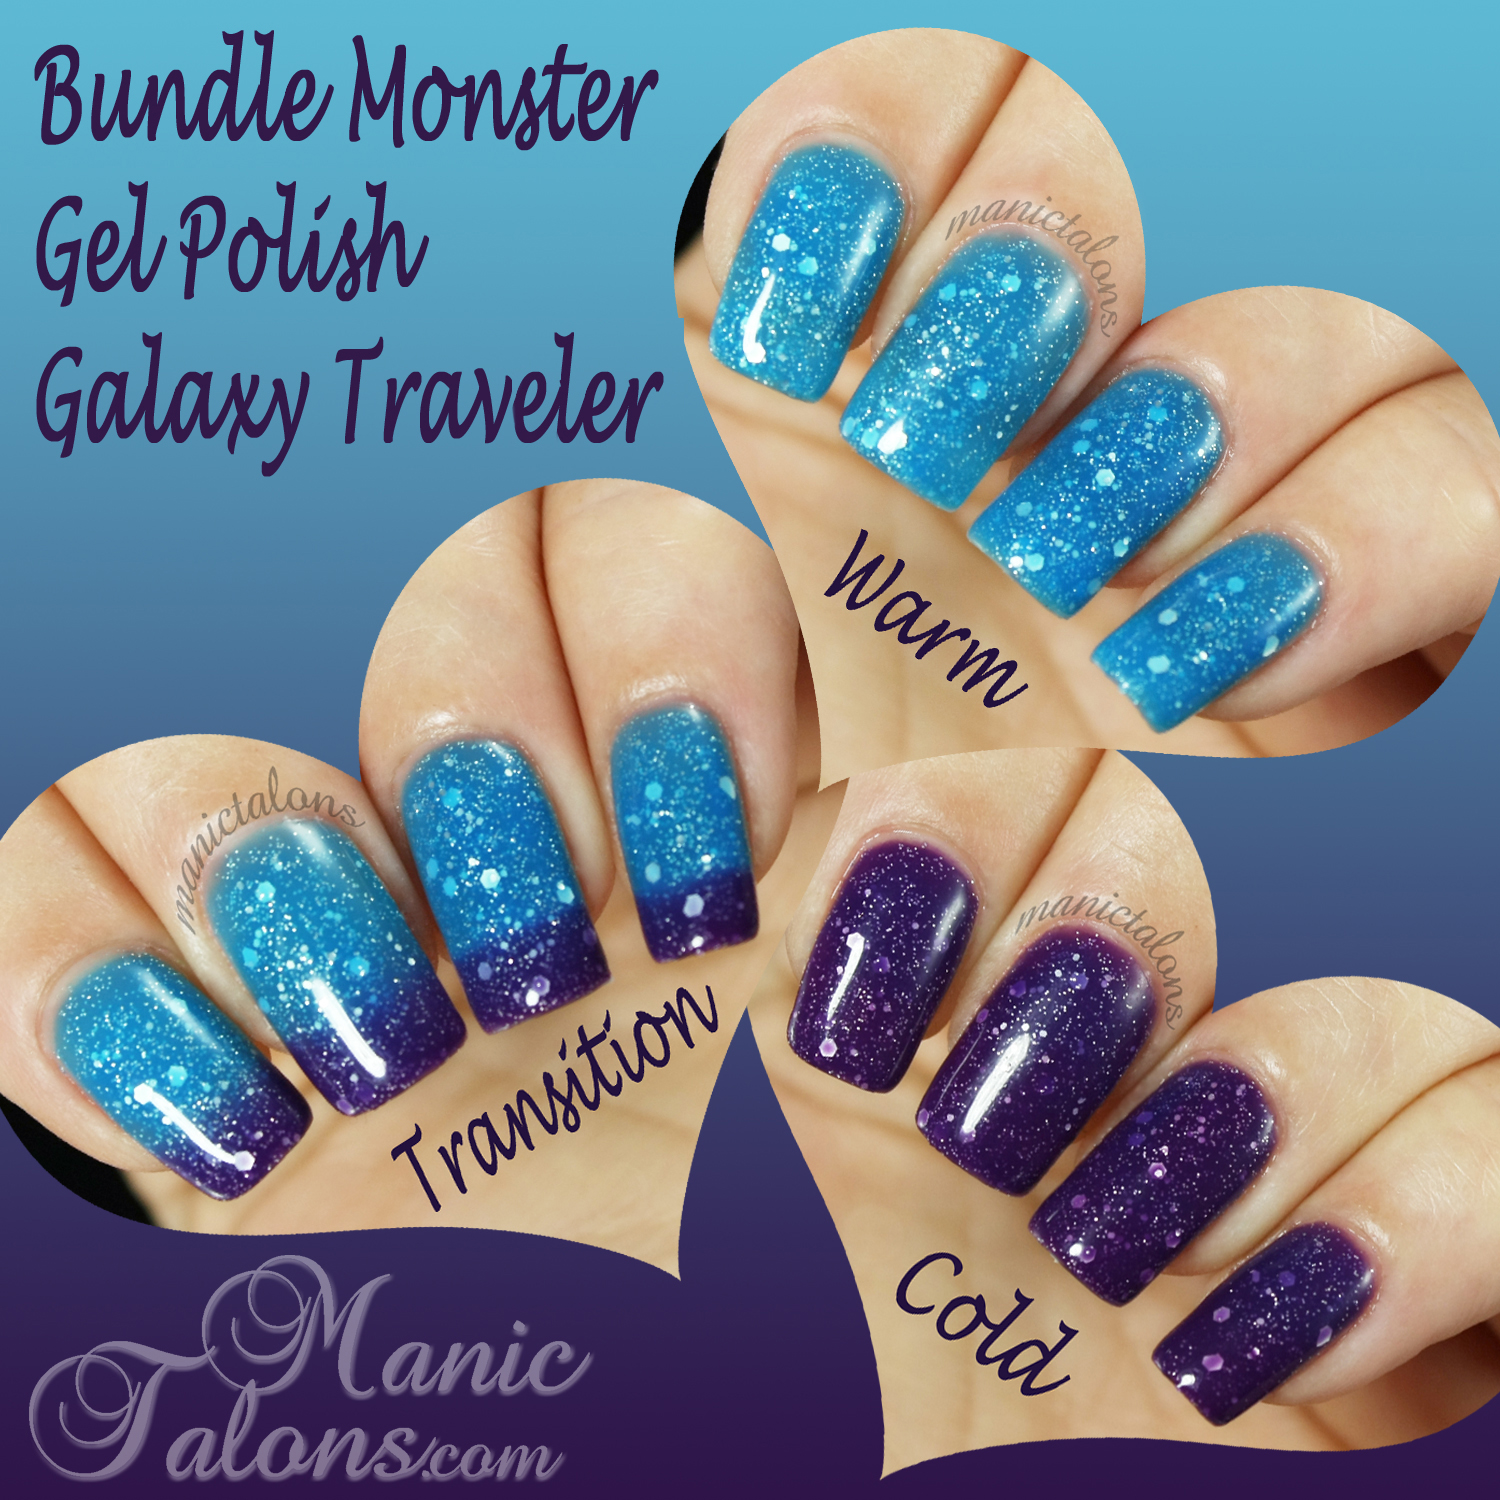 Bundle Monster Thermal Gel Polish Galaxy Traveler Swatch